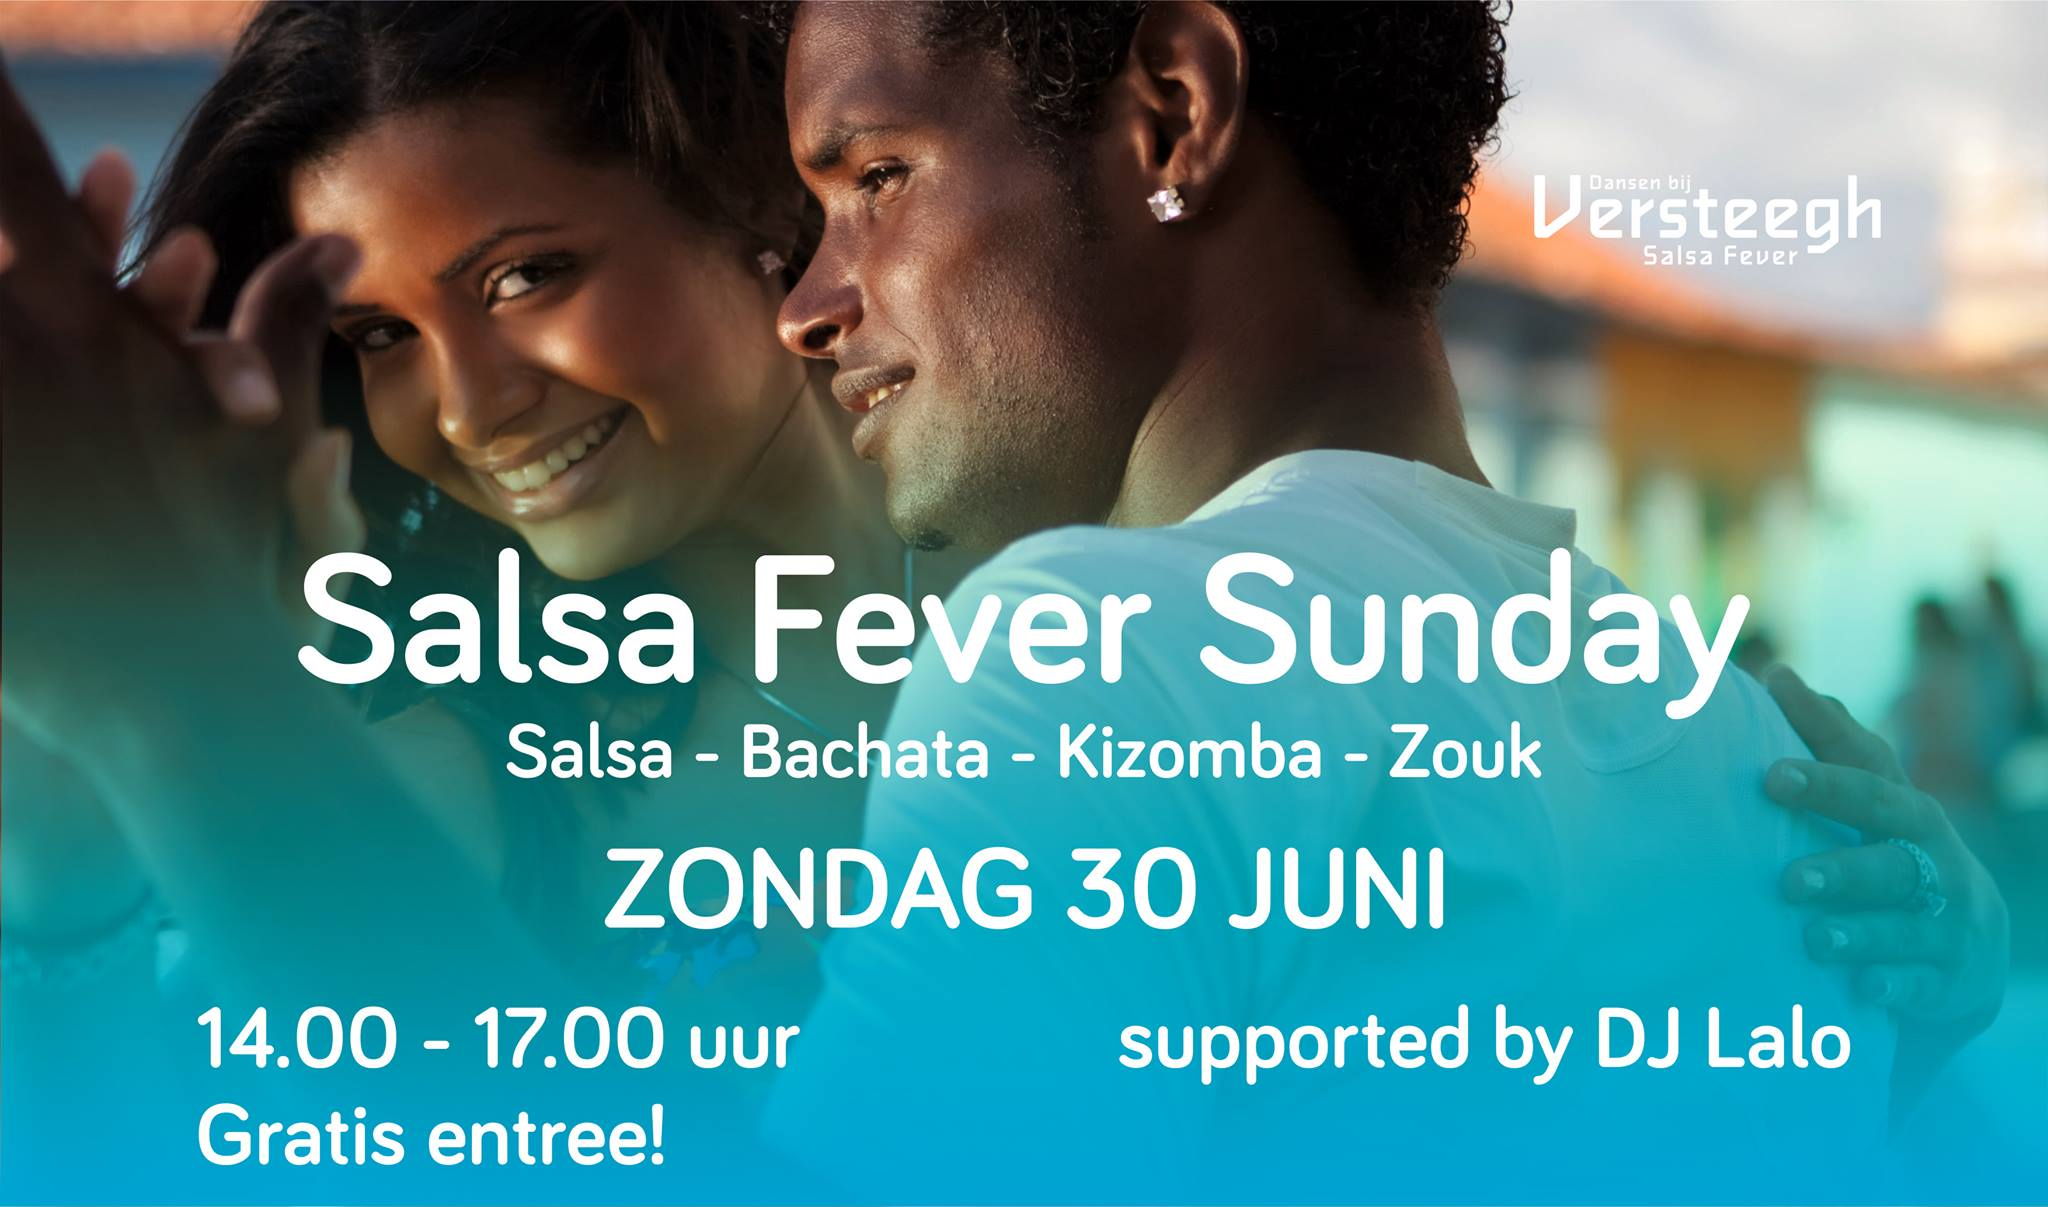 Salsa Fever Sunday!